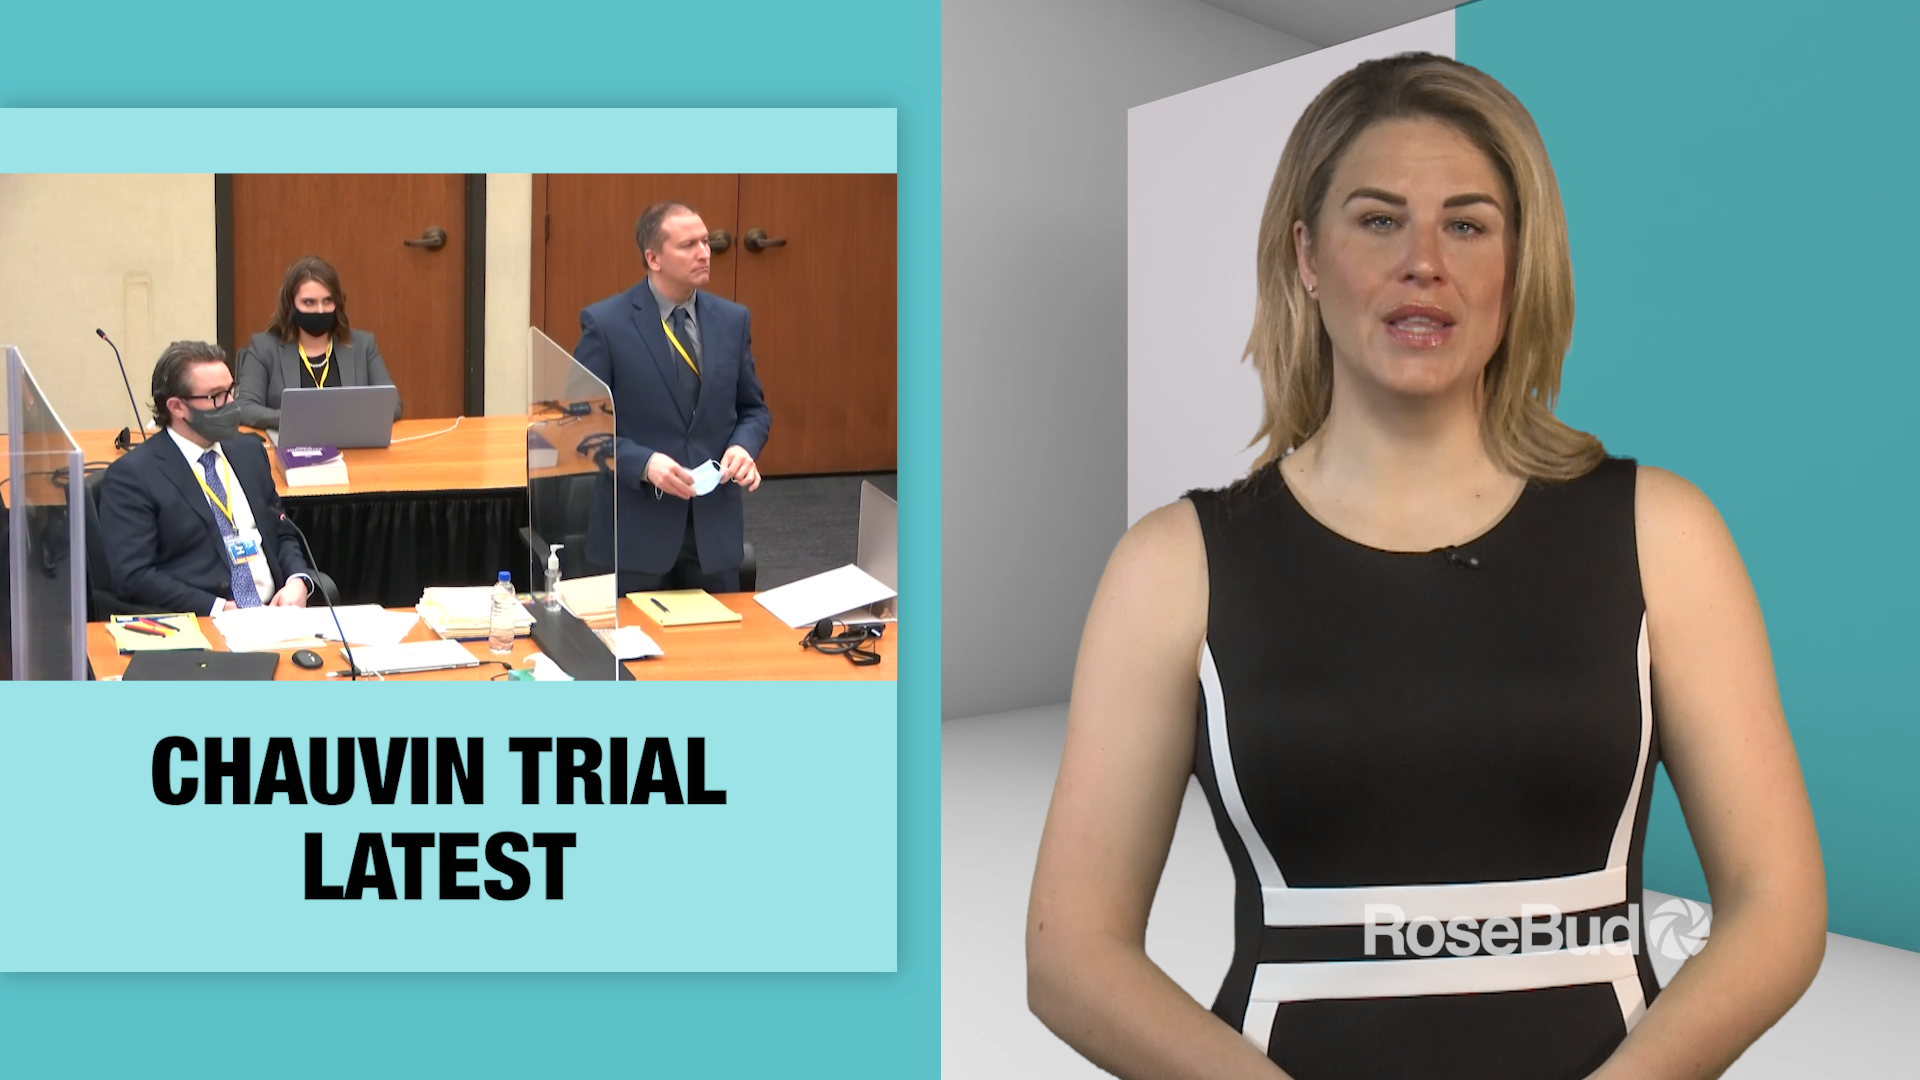 Chauvin Trial Latest